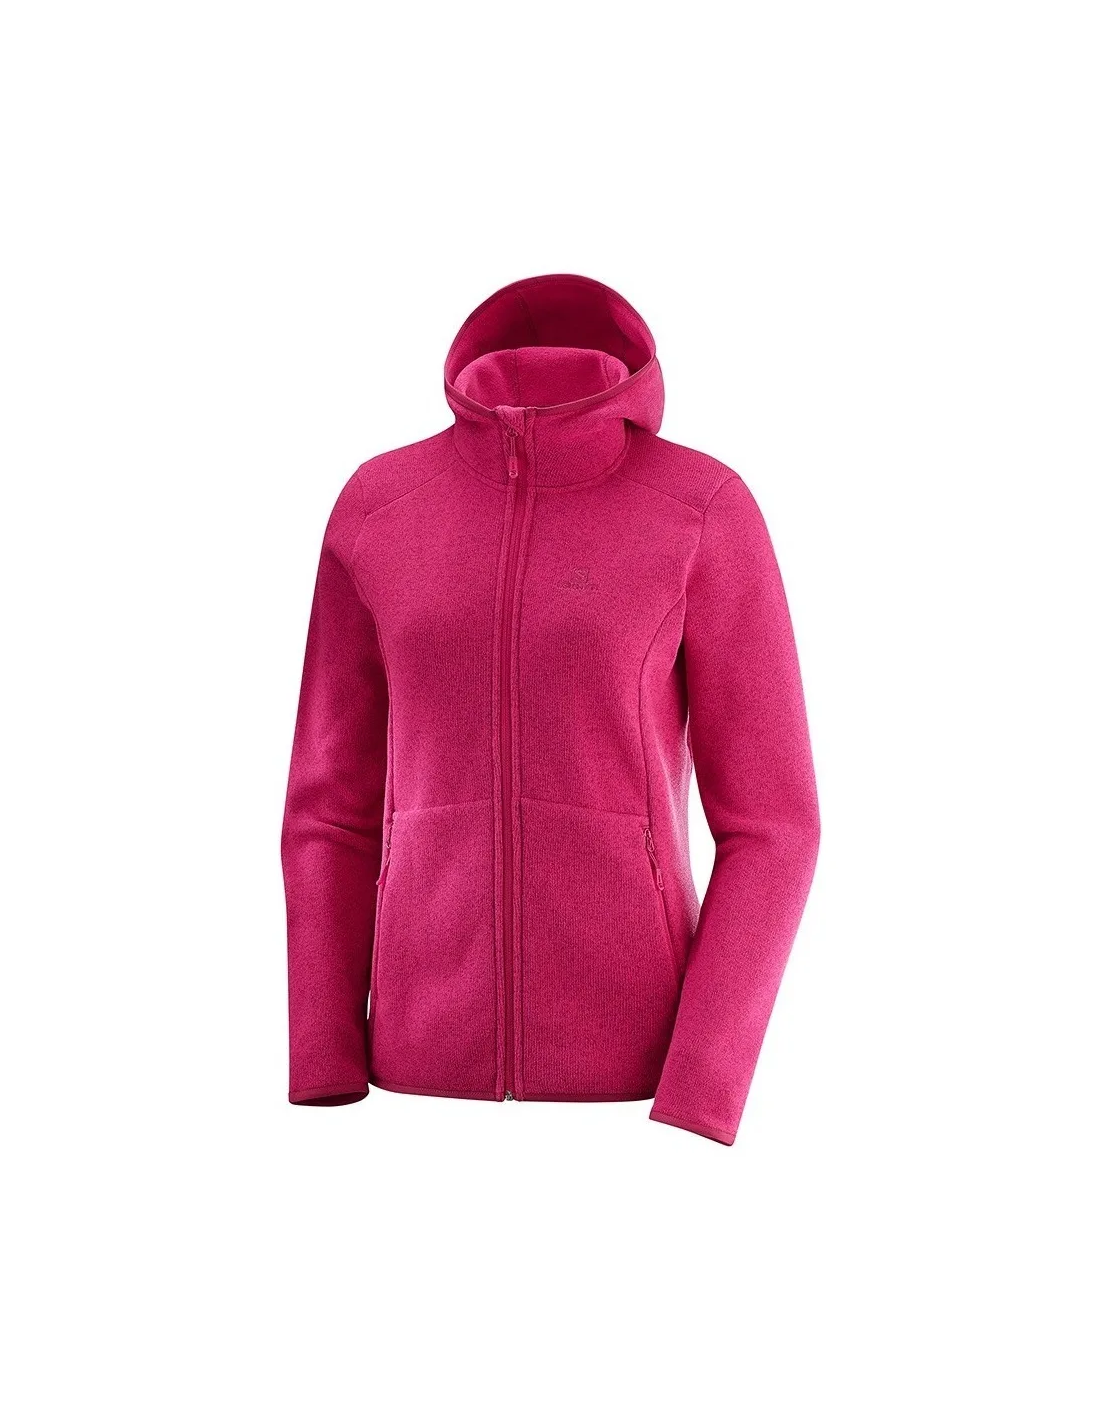 SALOMON Bise Hoodie W Poli/éster Mujer Chaqueta deportiva con capucha